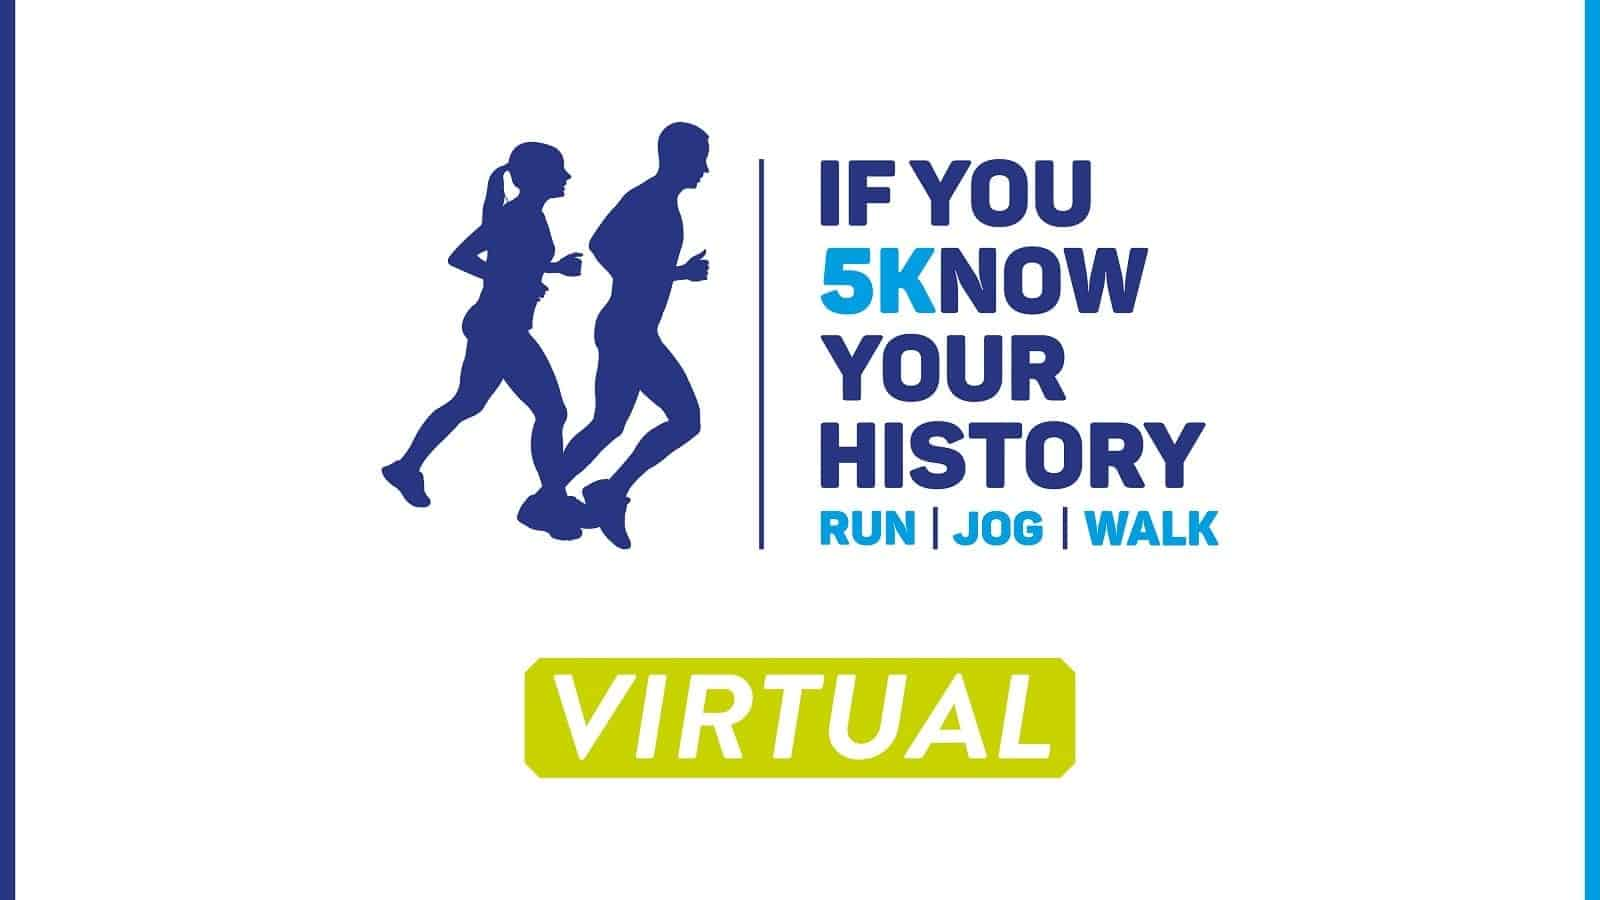 Everton Charity Run returns for Virtual 'If You Know Your History 5k'